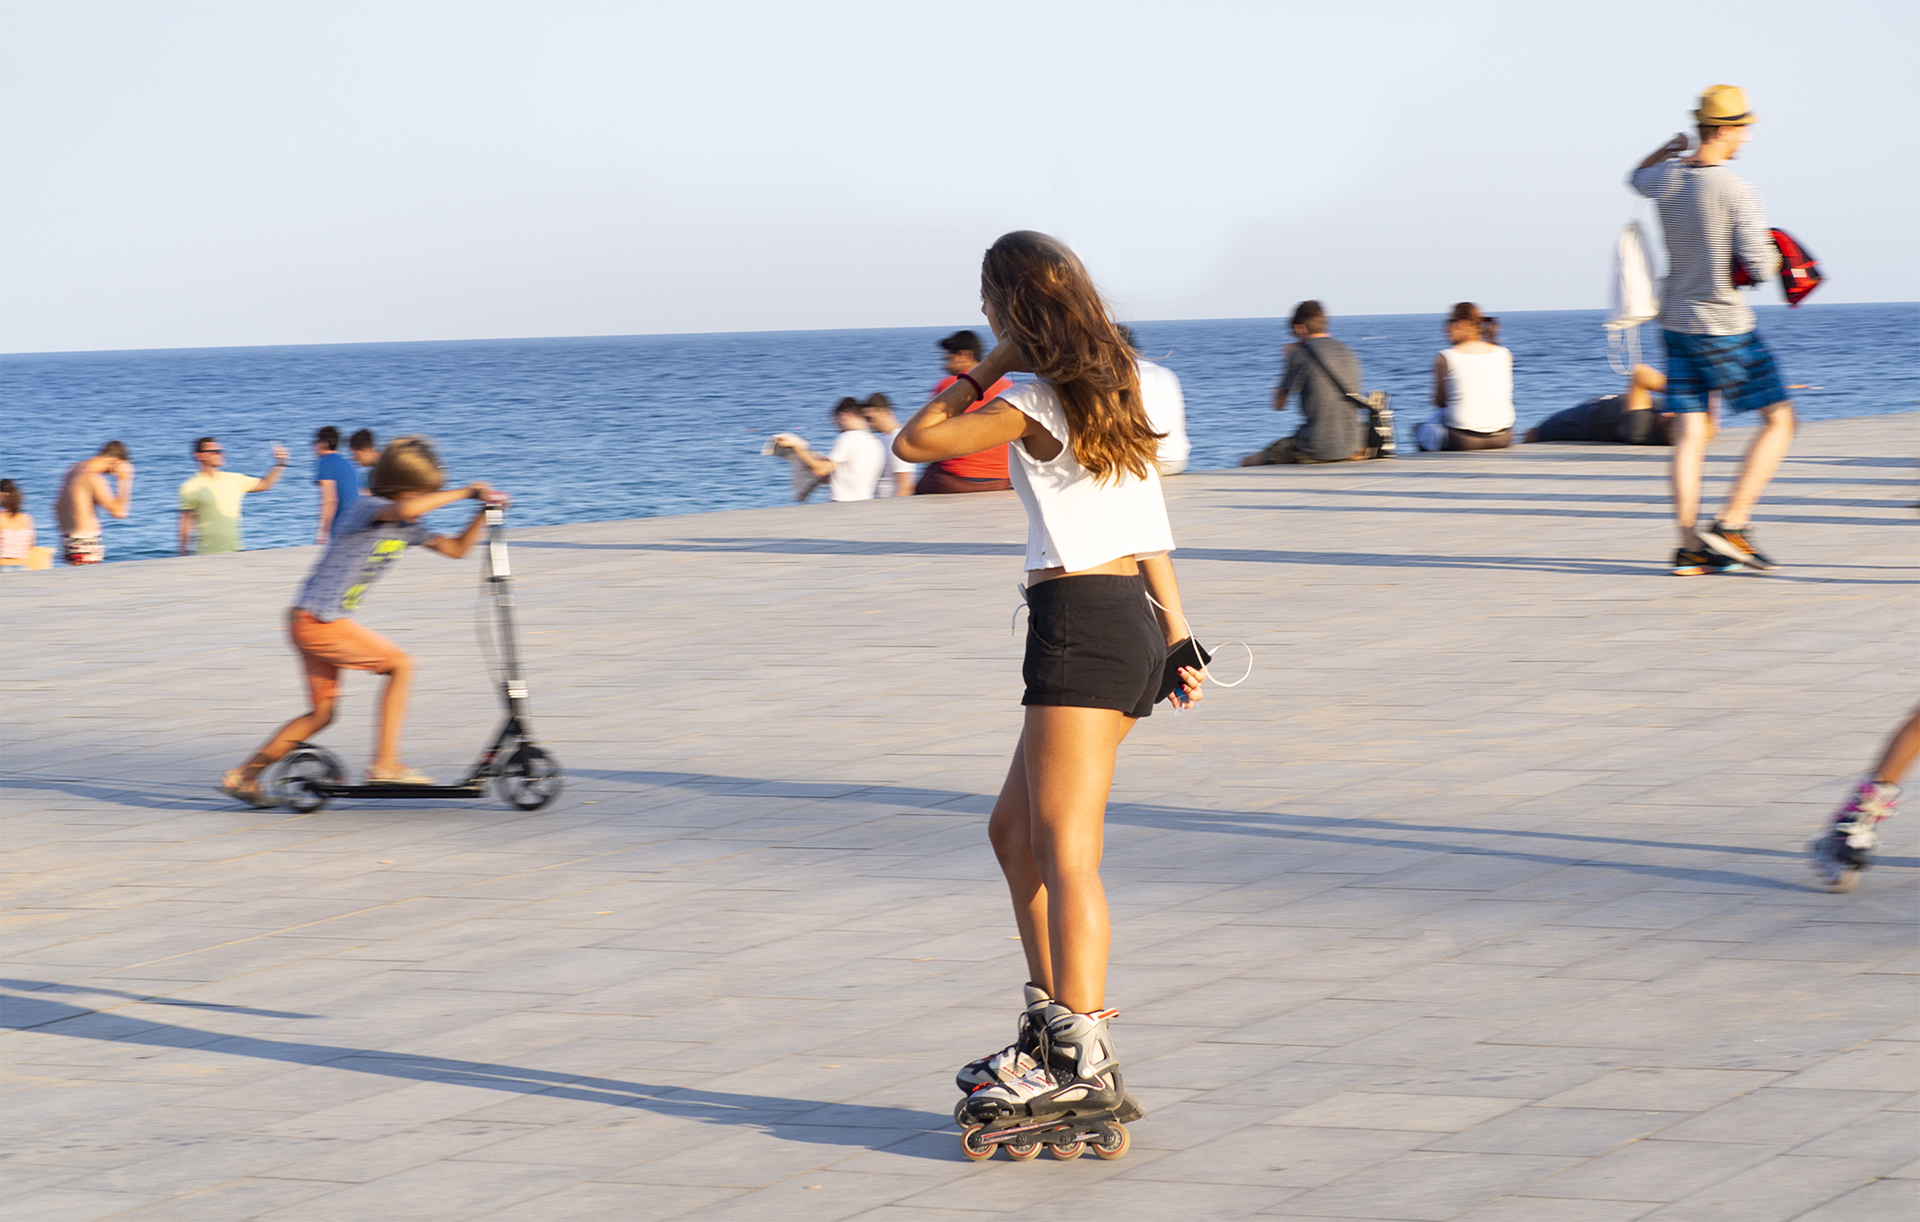 People enjoying the activities by Barceloneta Beach, rollerblading, walking, riding scooters and relaxing